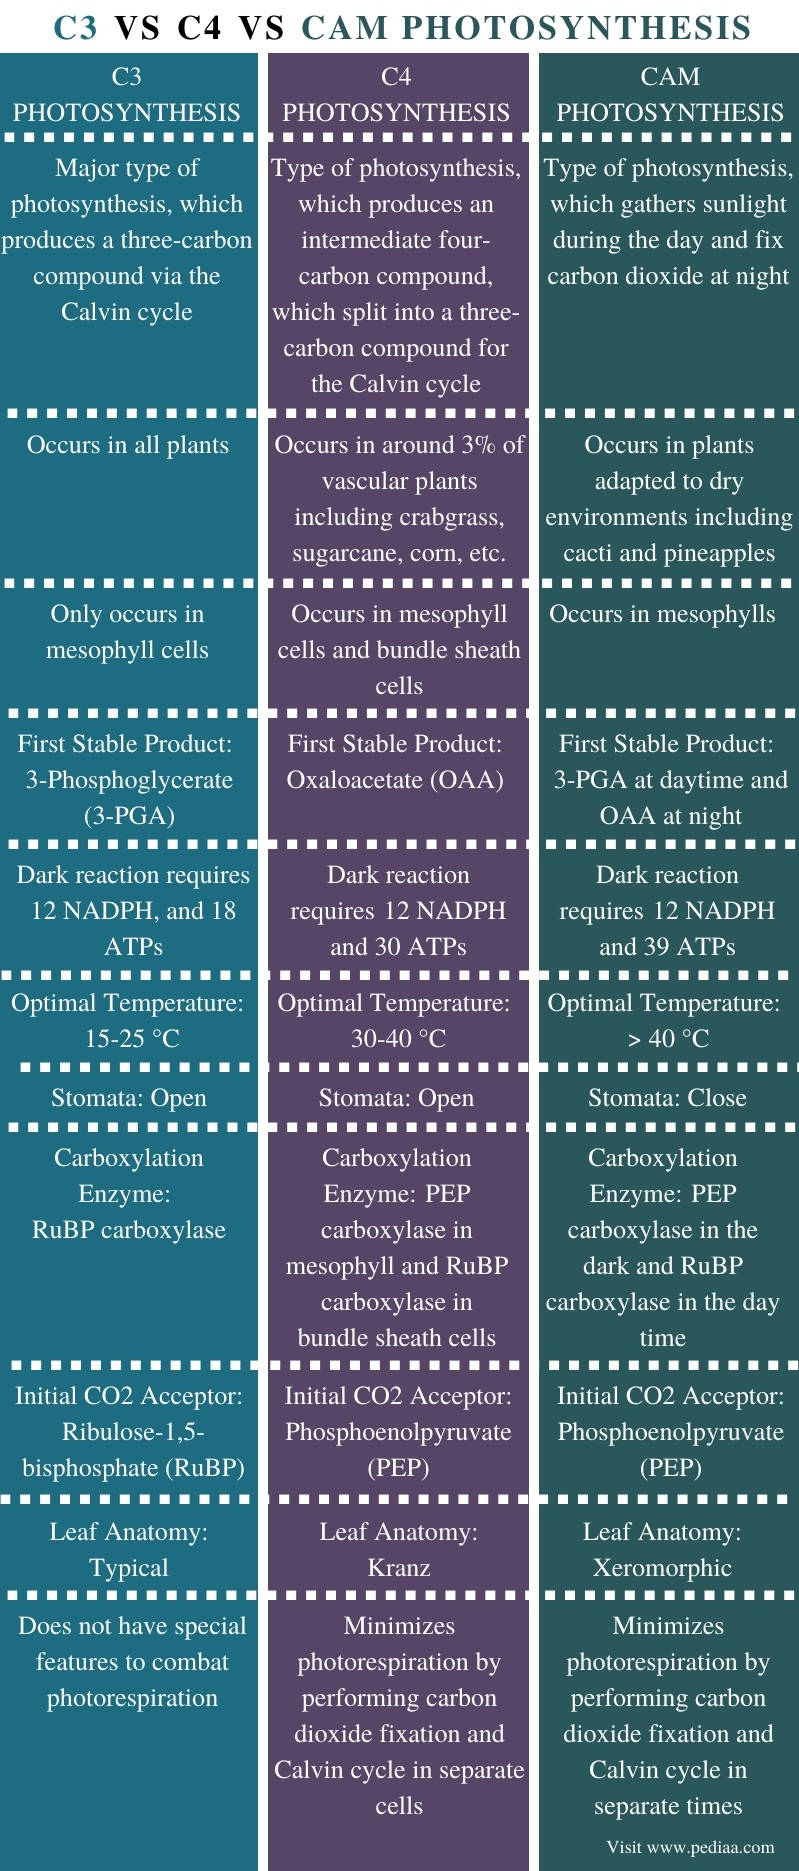 Difference Between C3 C4 and CAM Photosynthesis - Comparison Summary